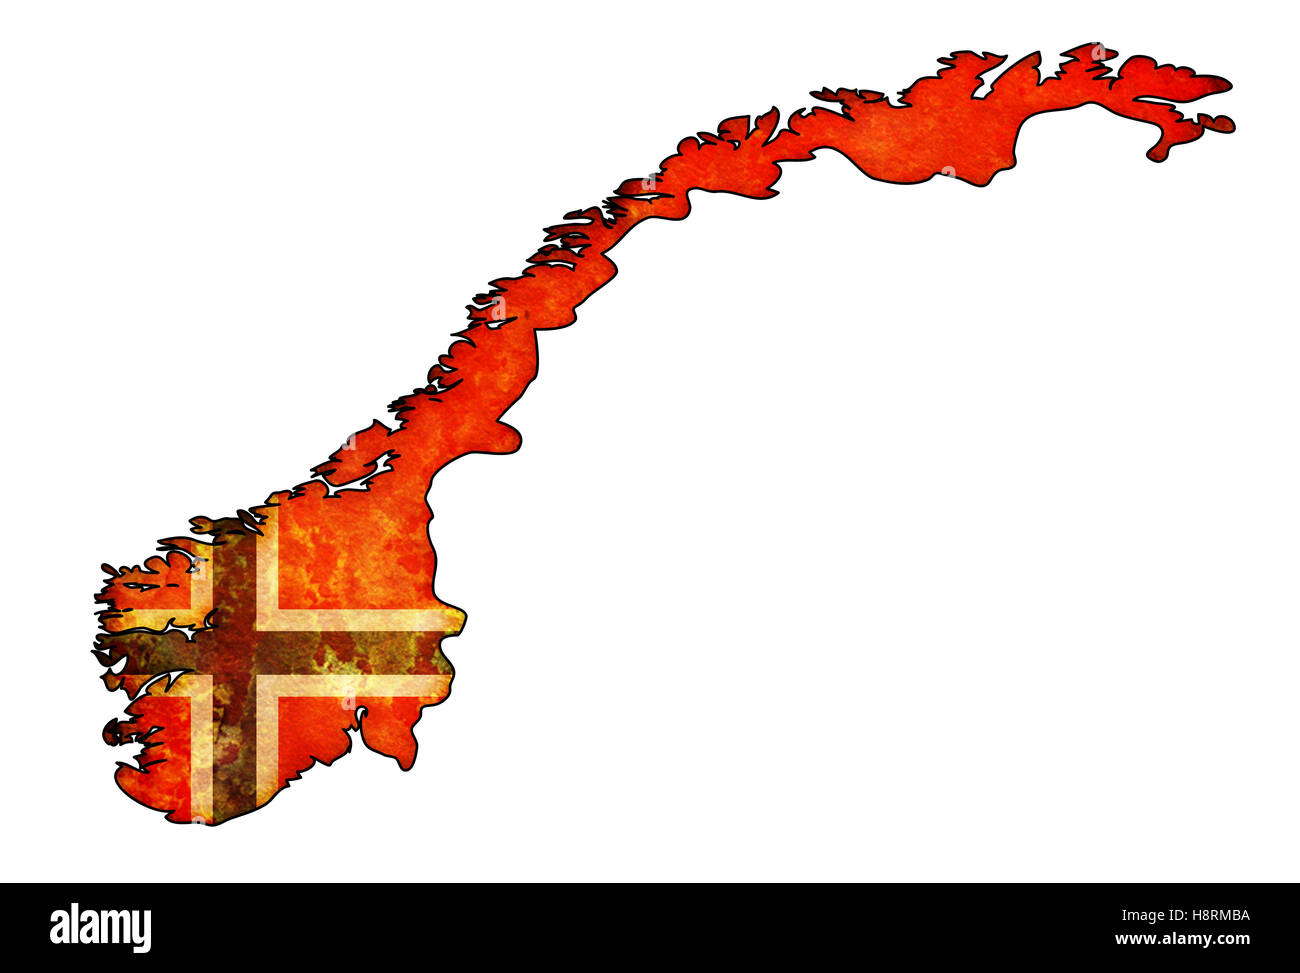 Old Map Of Norway With Flag On Country Territory Stock Photo - Norway map and flag